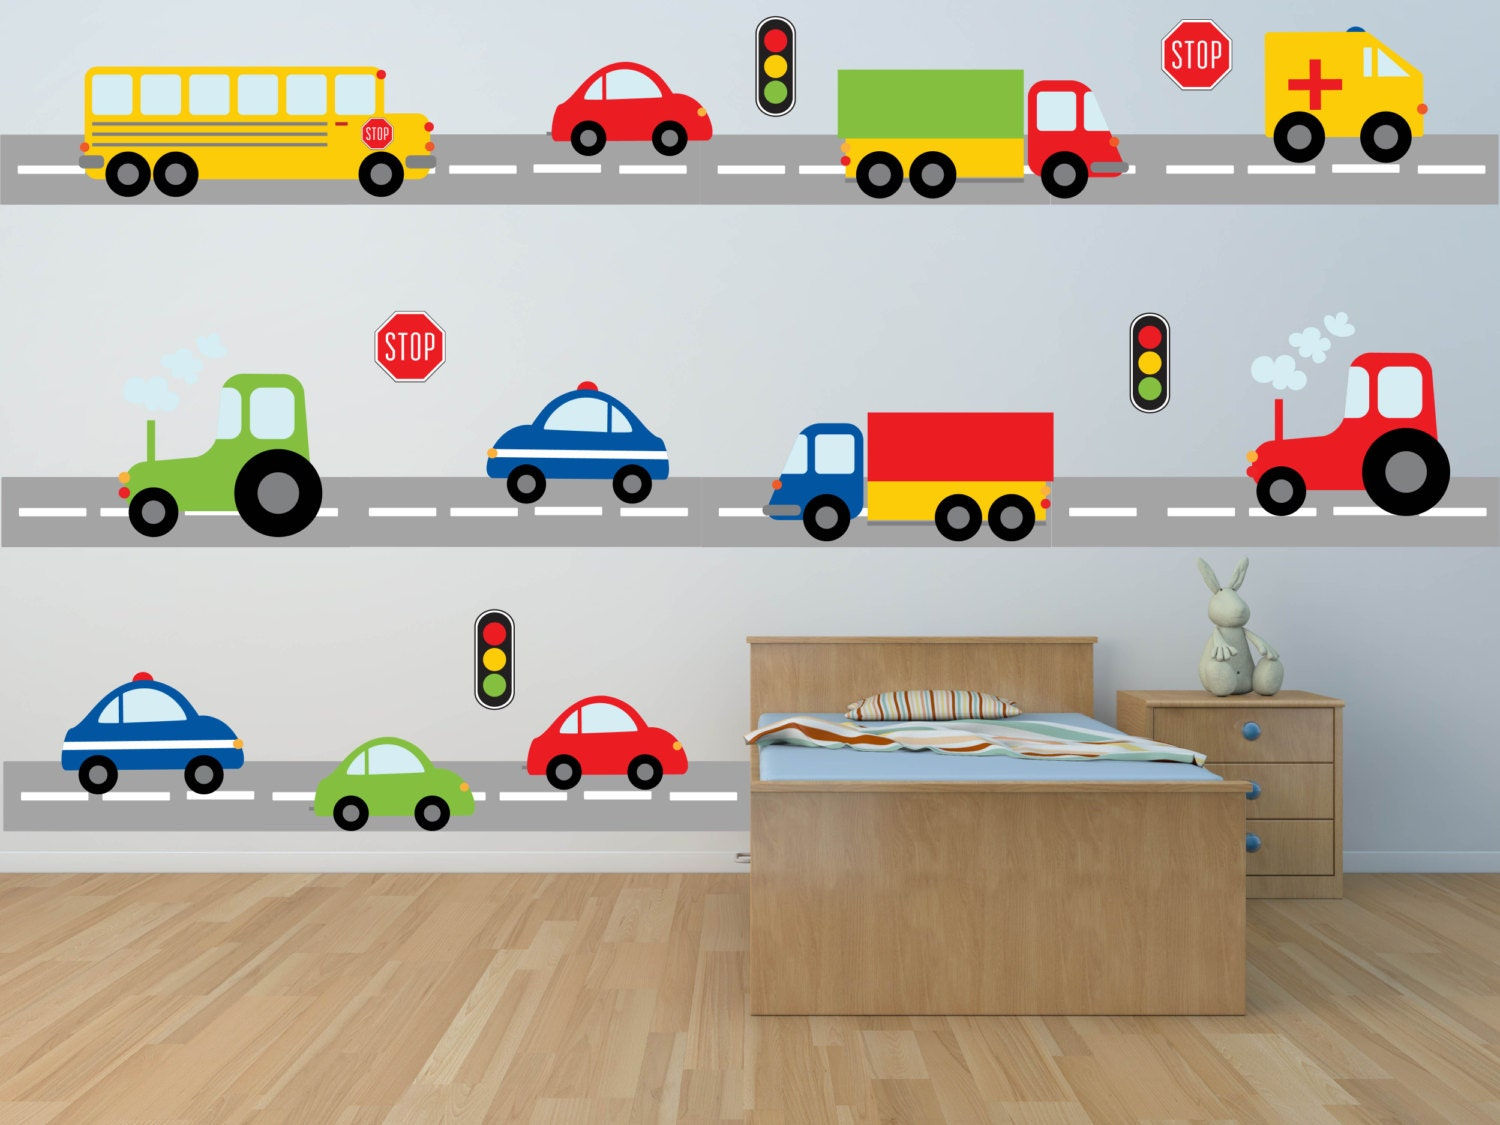 Truck wall decal construction wall decal car wall decal zoom amipublicfo Choice Image